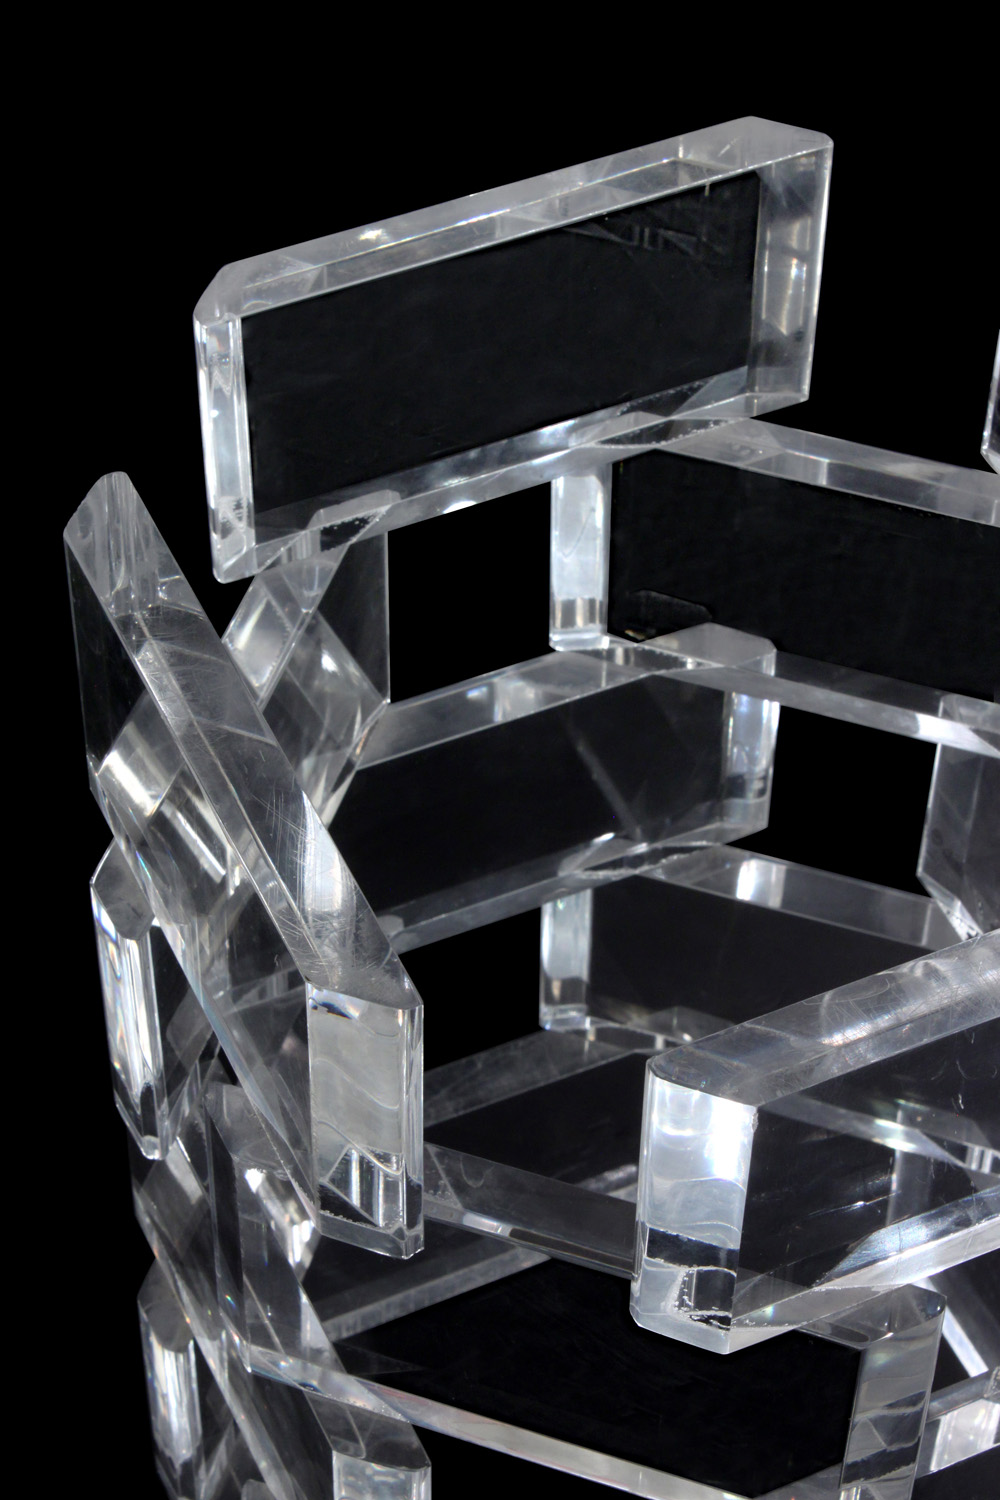 70's 45 stacked lucite blocks endtable159 detail3 hires.jpg